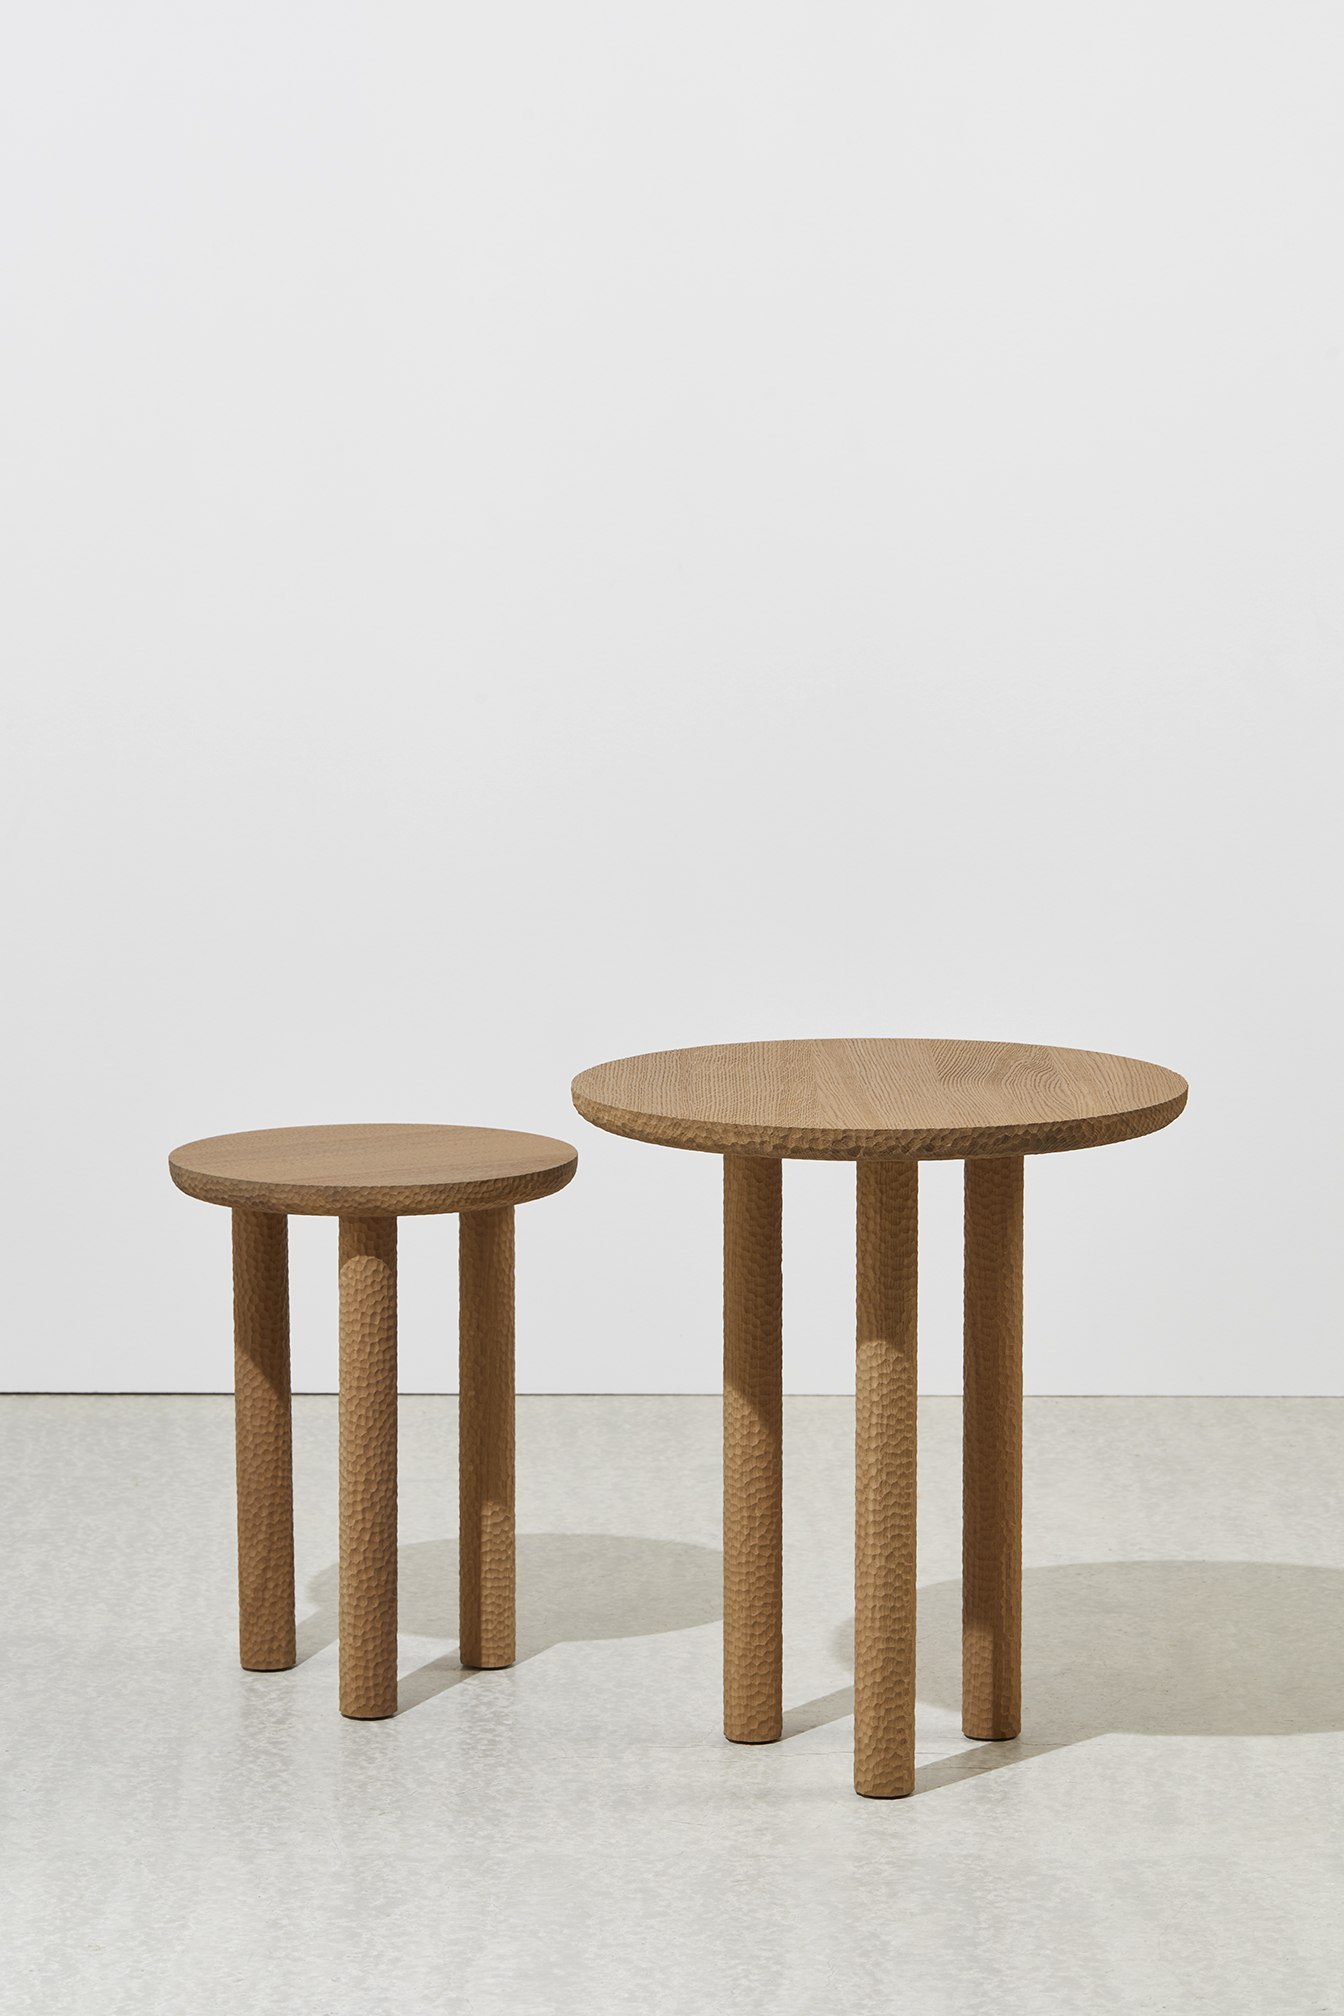 ROSAE-SIDE-TABLES-GOULA-FIGUERA-COLLECTION-PARTICULIERE